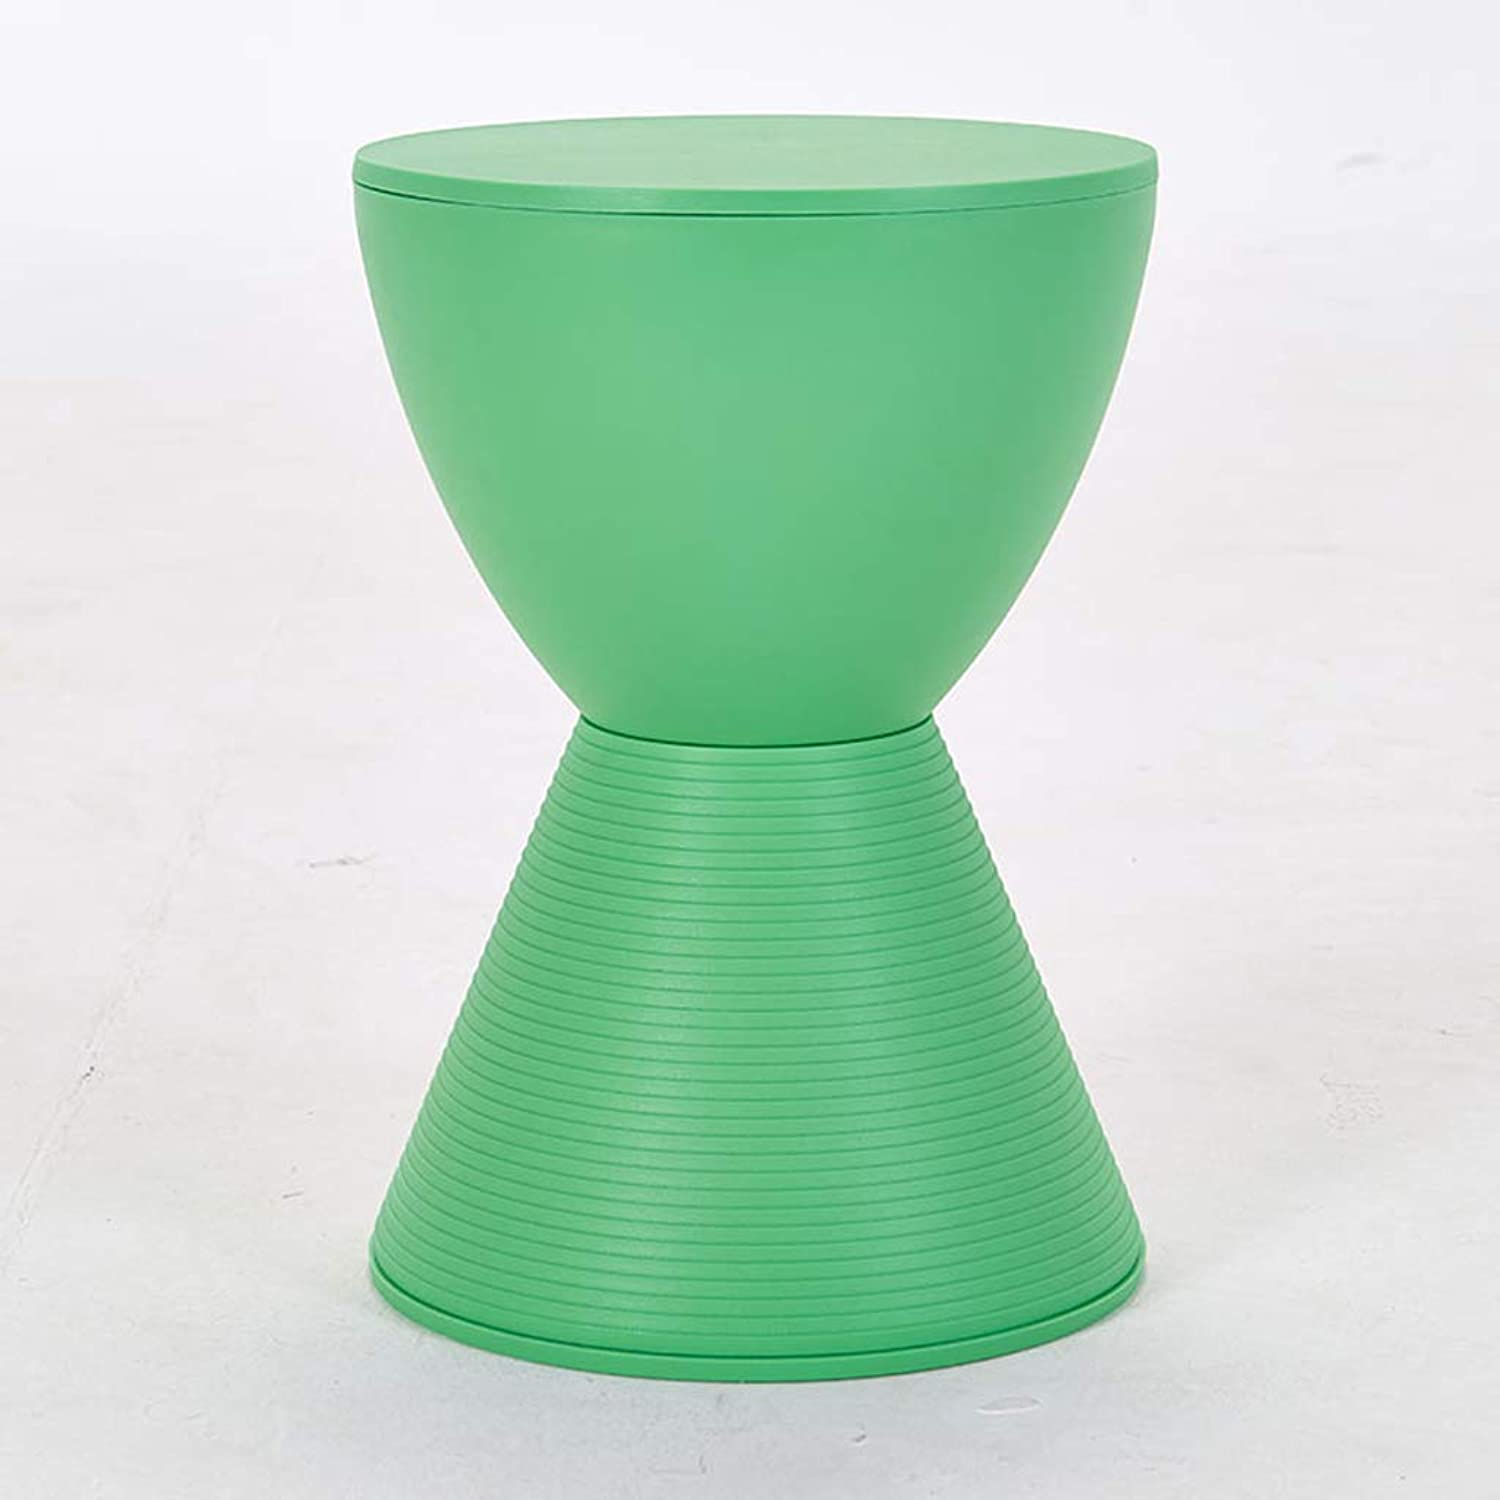 CXQ Modern Household Simple Fashion Creative shoes Low Stool Hourglass Plastic Small Bench (color   Green)